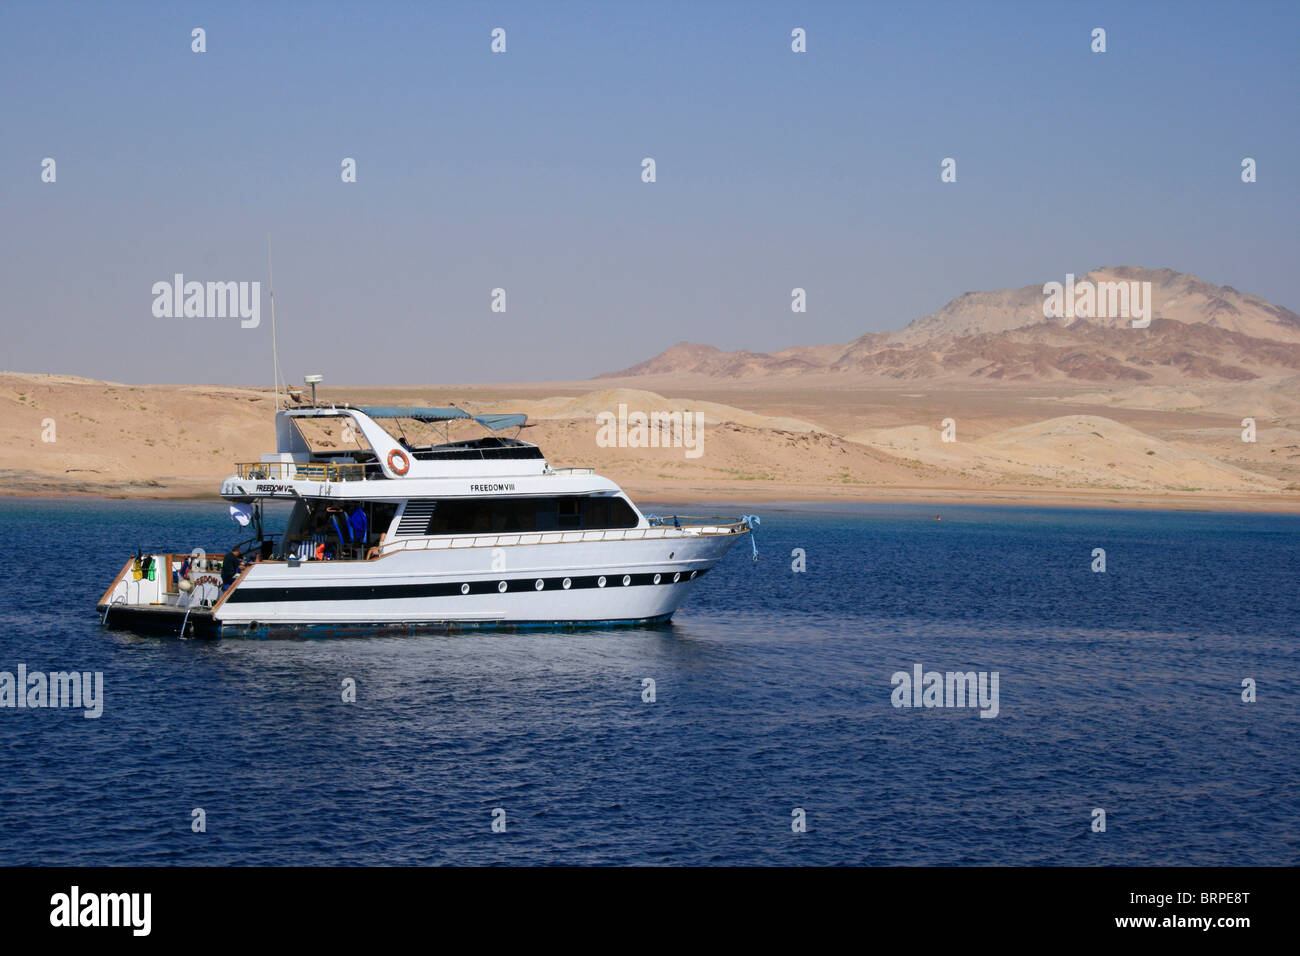 A diving boat anchored in Ras Mohammed National Marine Park near Sharm el Sheikh, Egypt - Stock Image